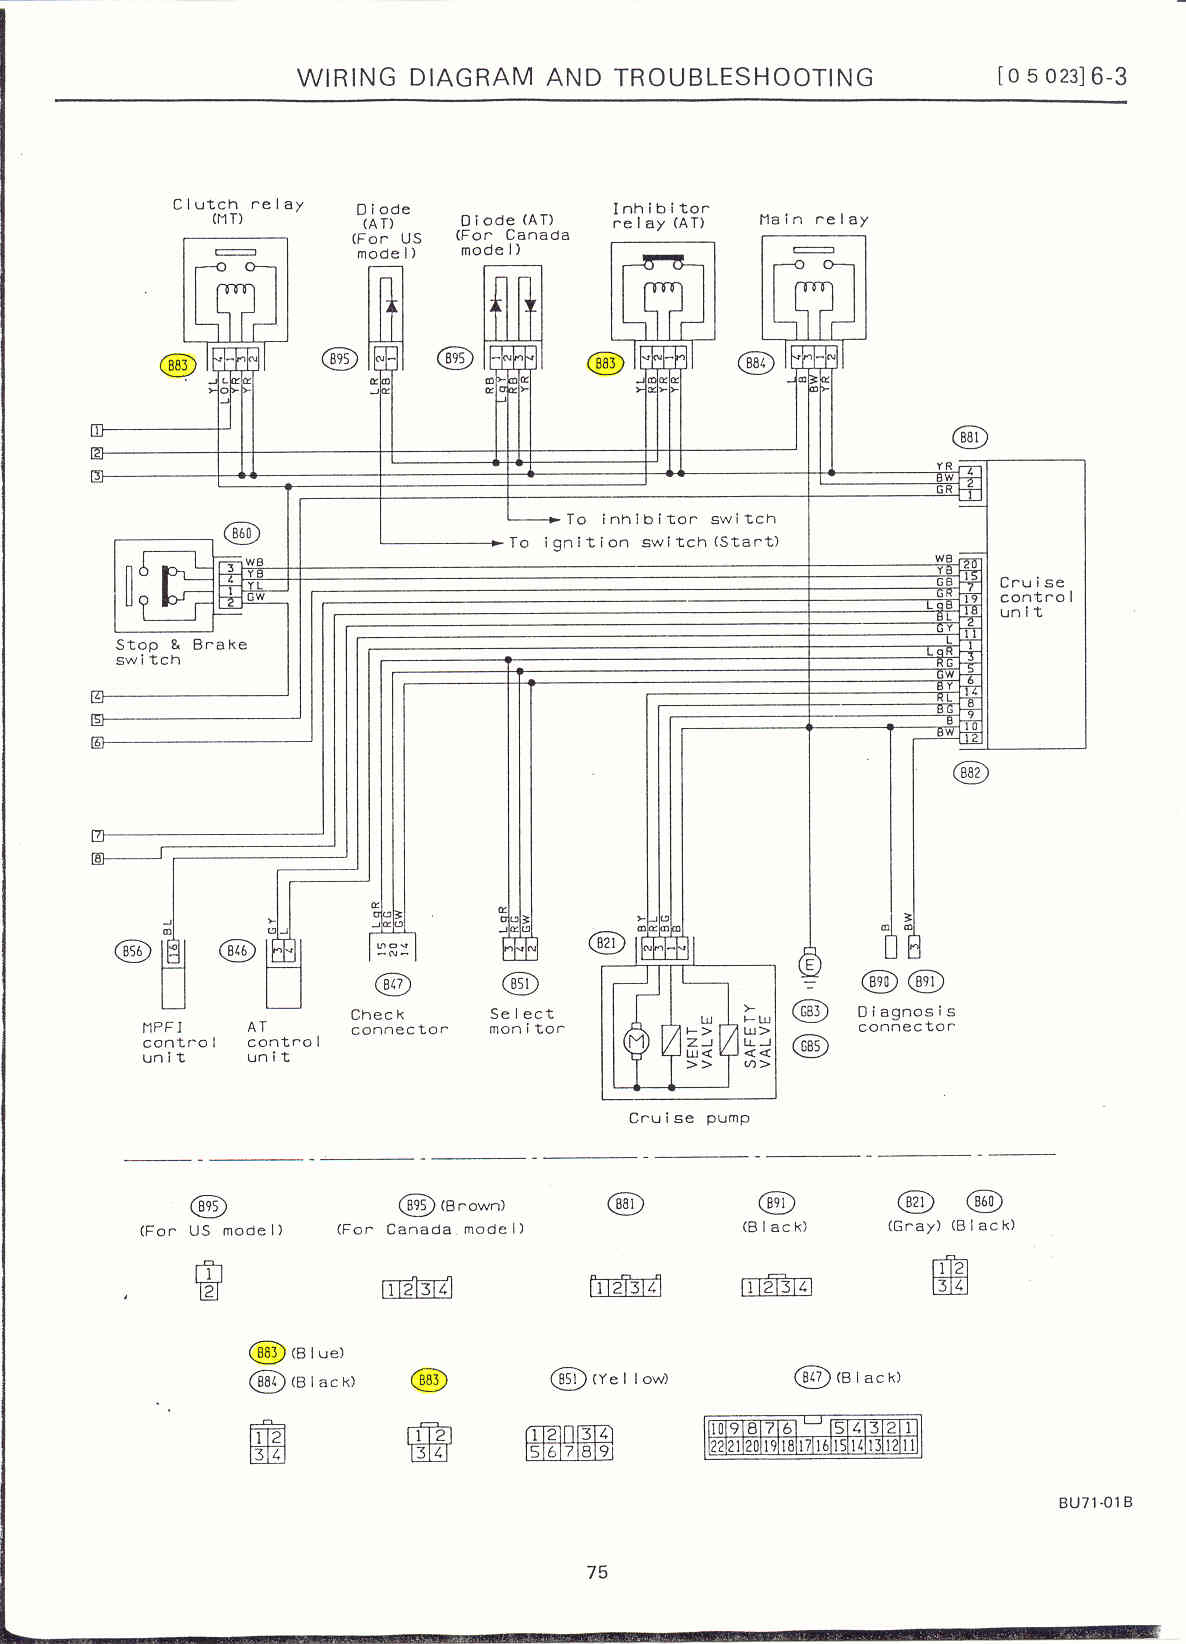 2001 subaru legacy gt engine diagram   36 wiring diagram